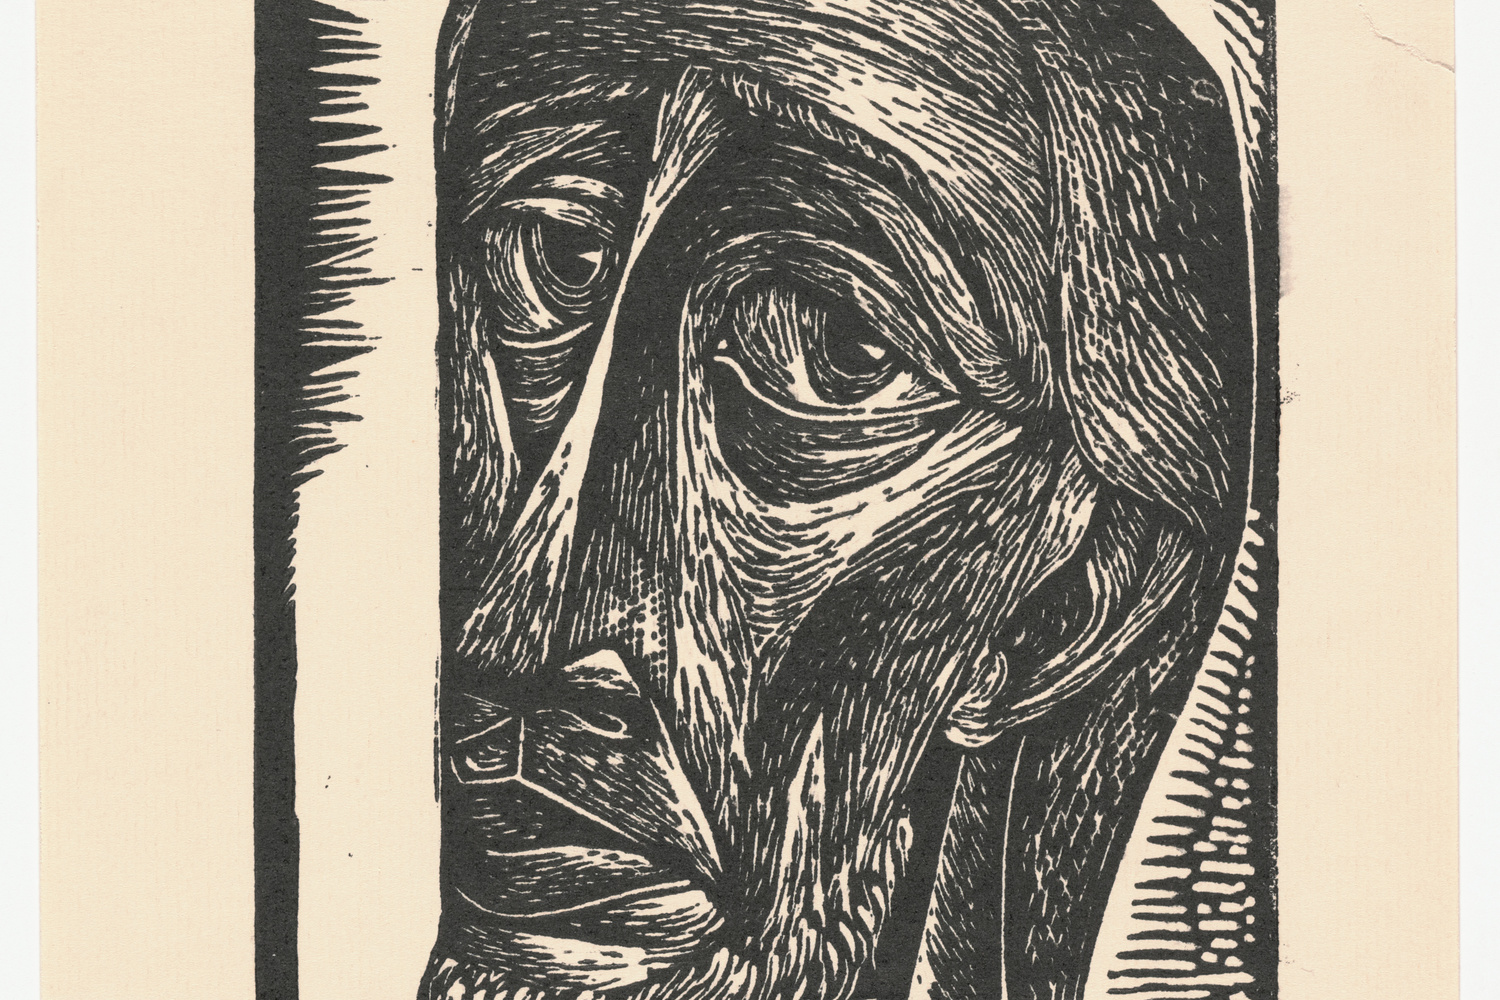 "Charles White. Untitled (Bearded Man). c. 1949. Linoleum cut. Composition: 7 13/16 x 6"" (19.9 x 15.2 cm); sheet: 10 1/2 x 8 5/16"" (26.7 x 21.1 cm). John B. Turner Fund. © 2018 The Charles White Archives. Photo: Peter Butler"